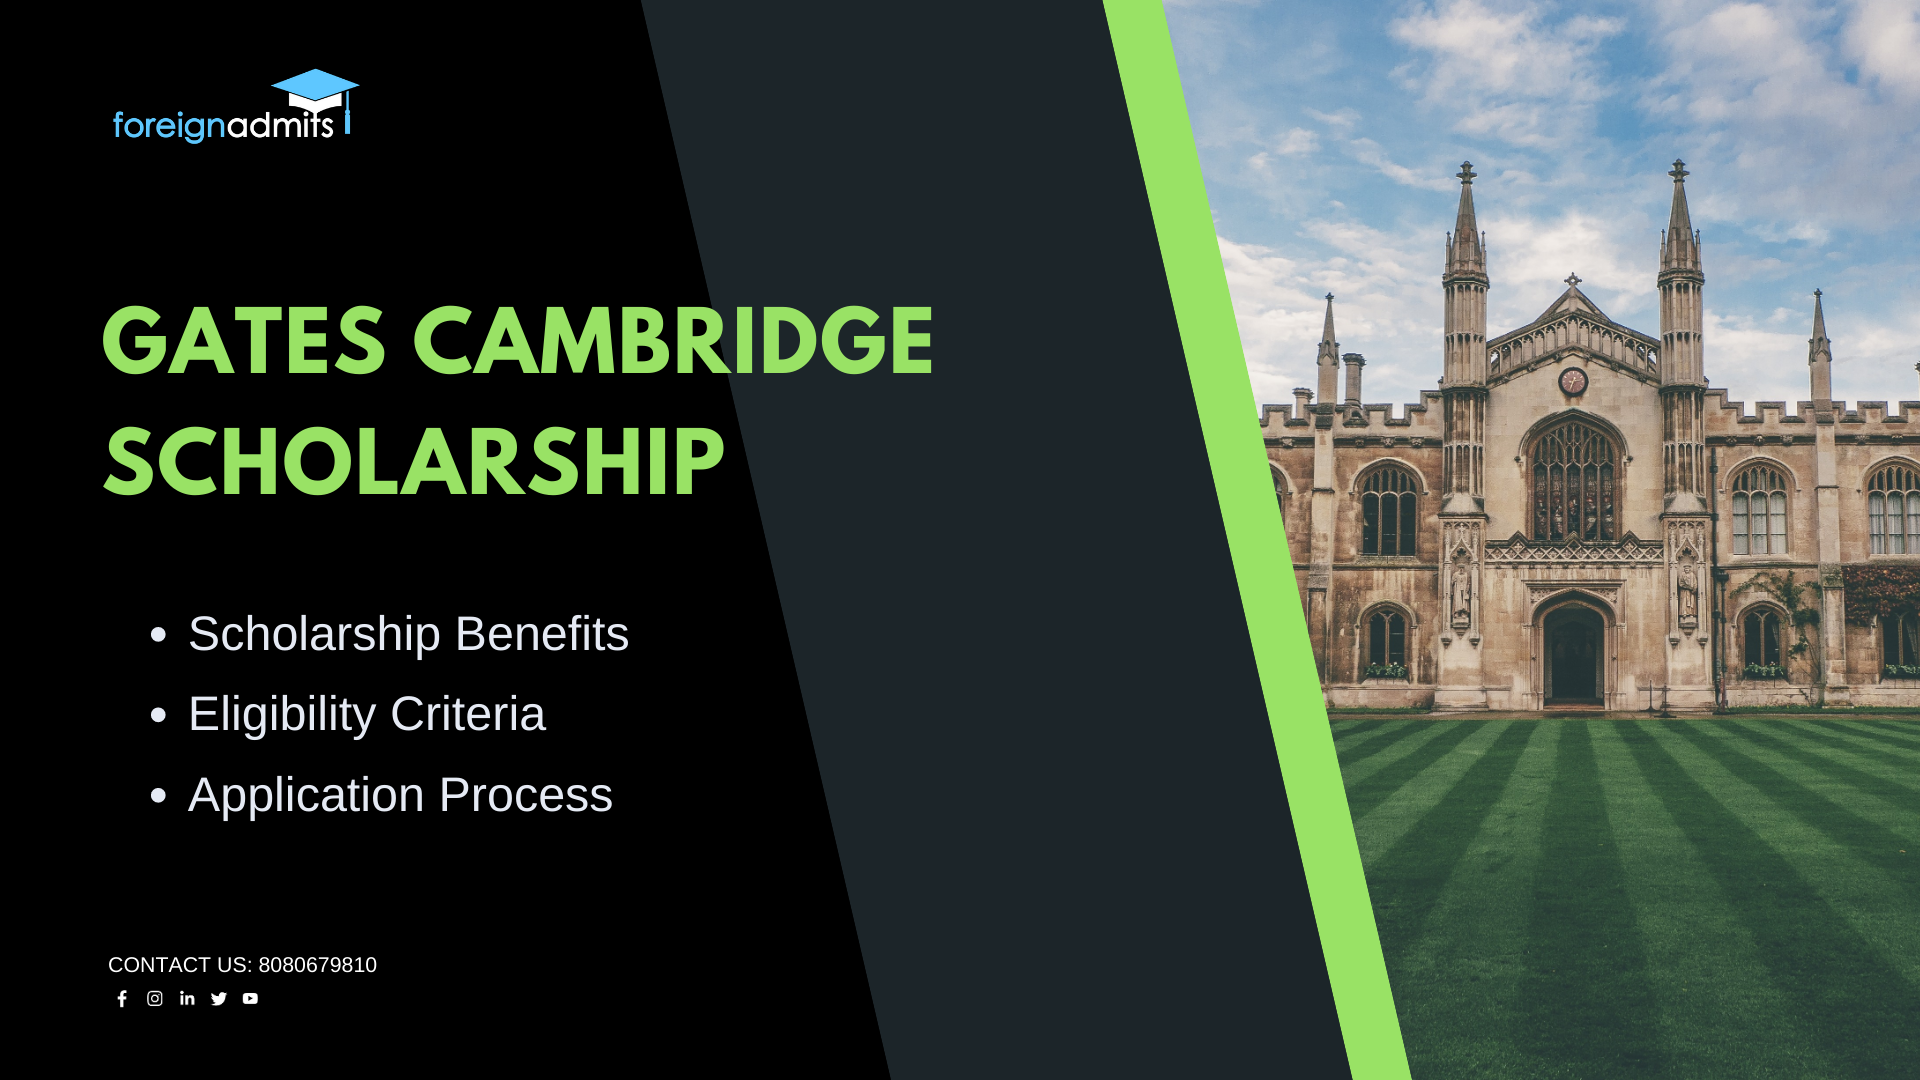 Gates Cambridge Scholarship